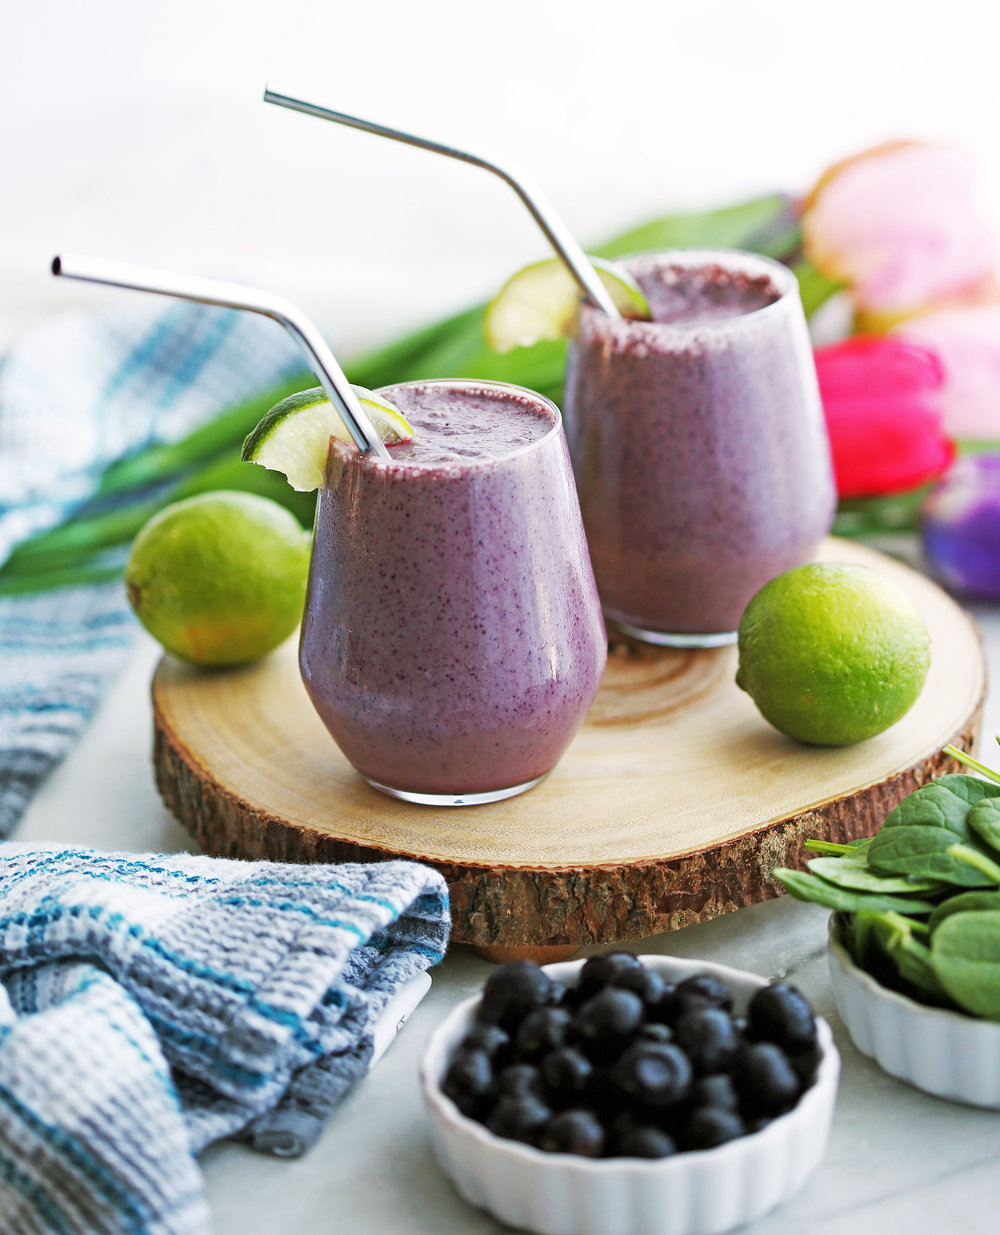 Two Blueberry Lime Yogurt Smoothies on a round wooden board, surrounded by limes, blueberries, and spinach.